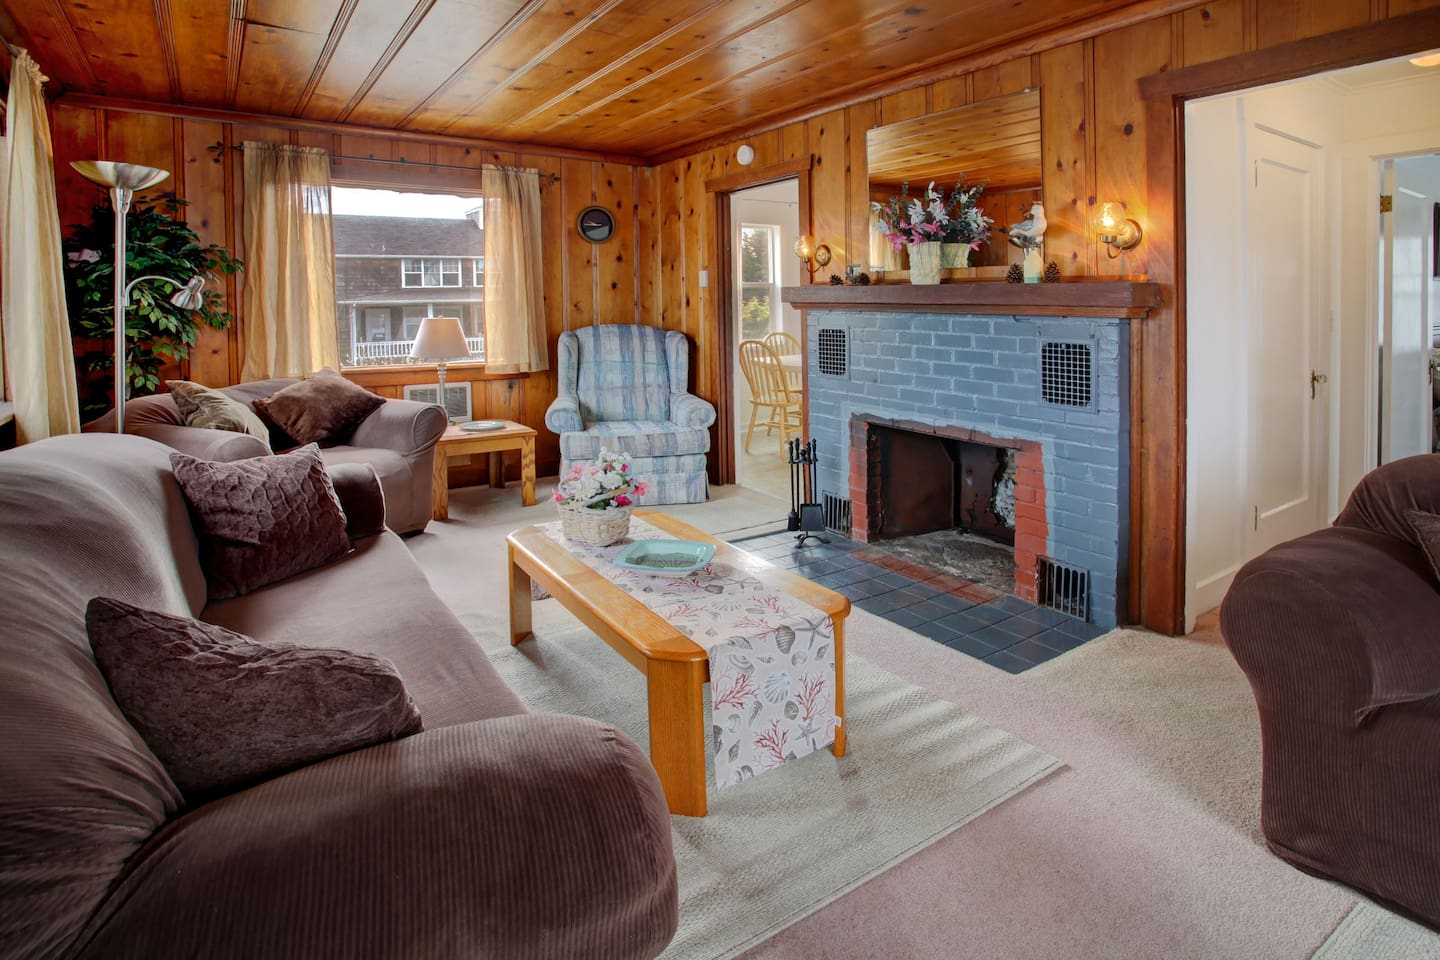 Spacious Living Areas with Multiple Couches